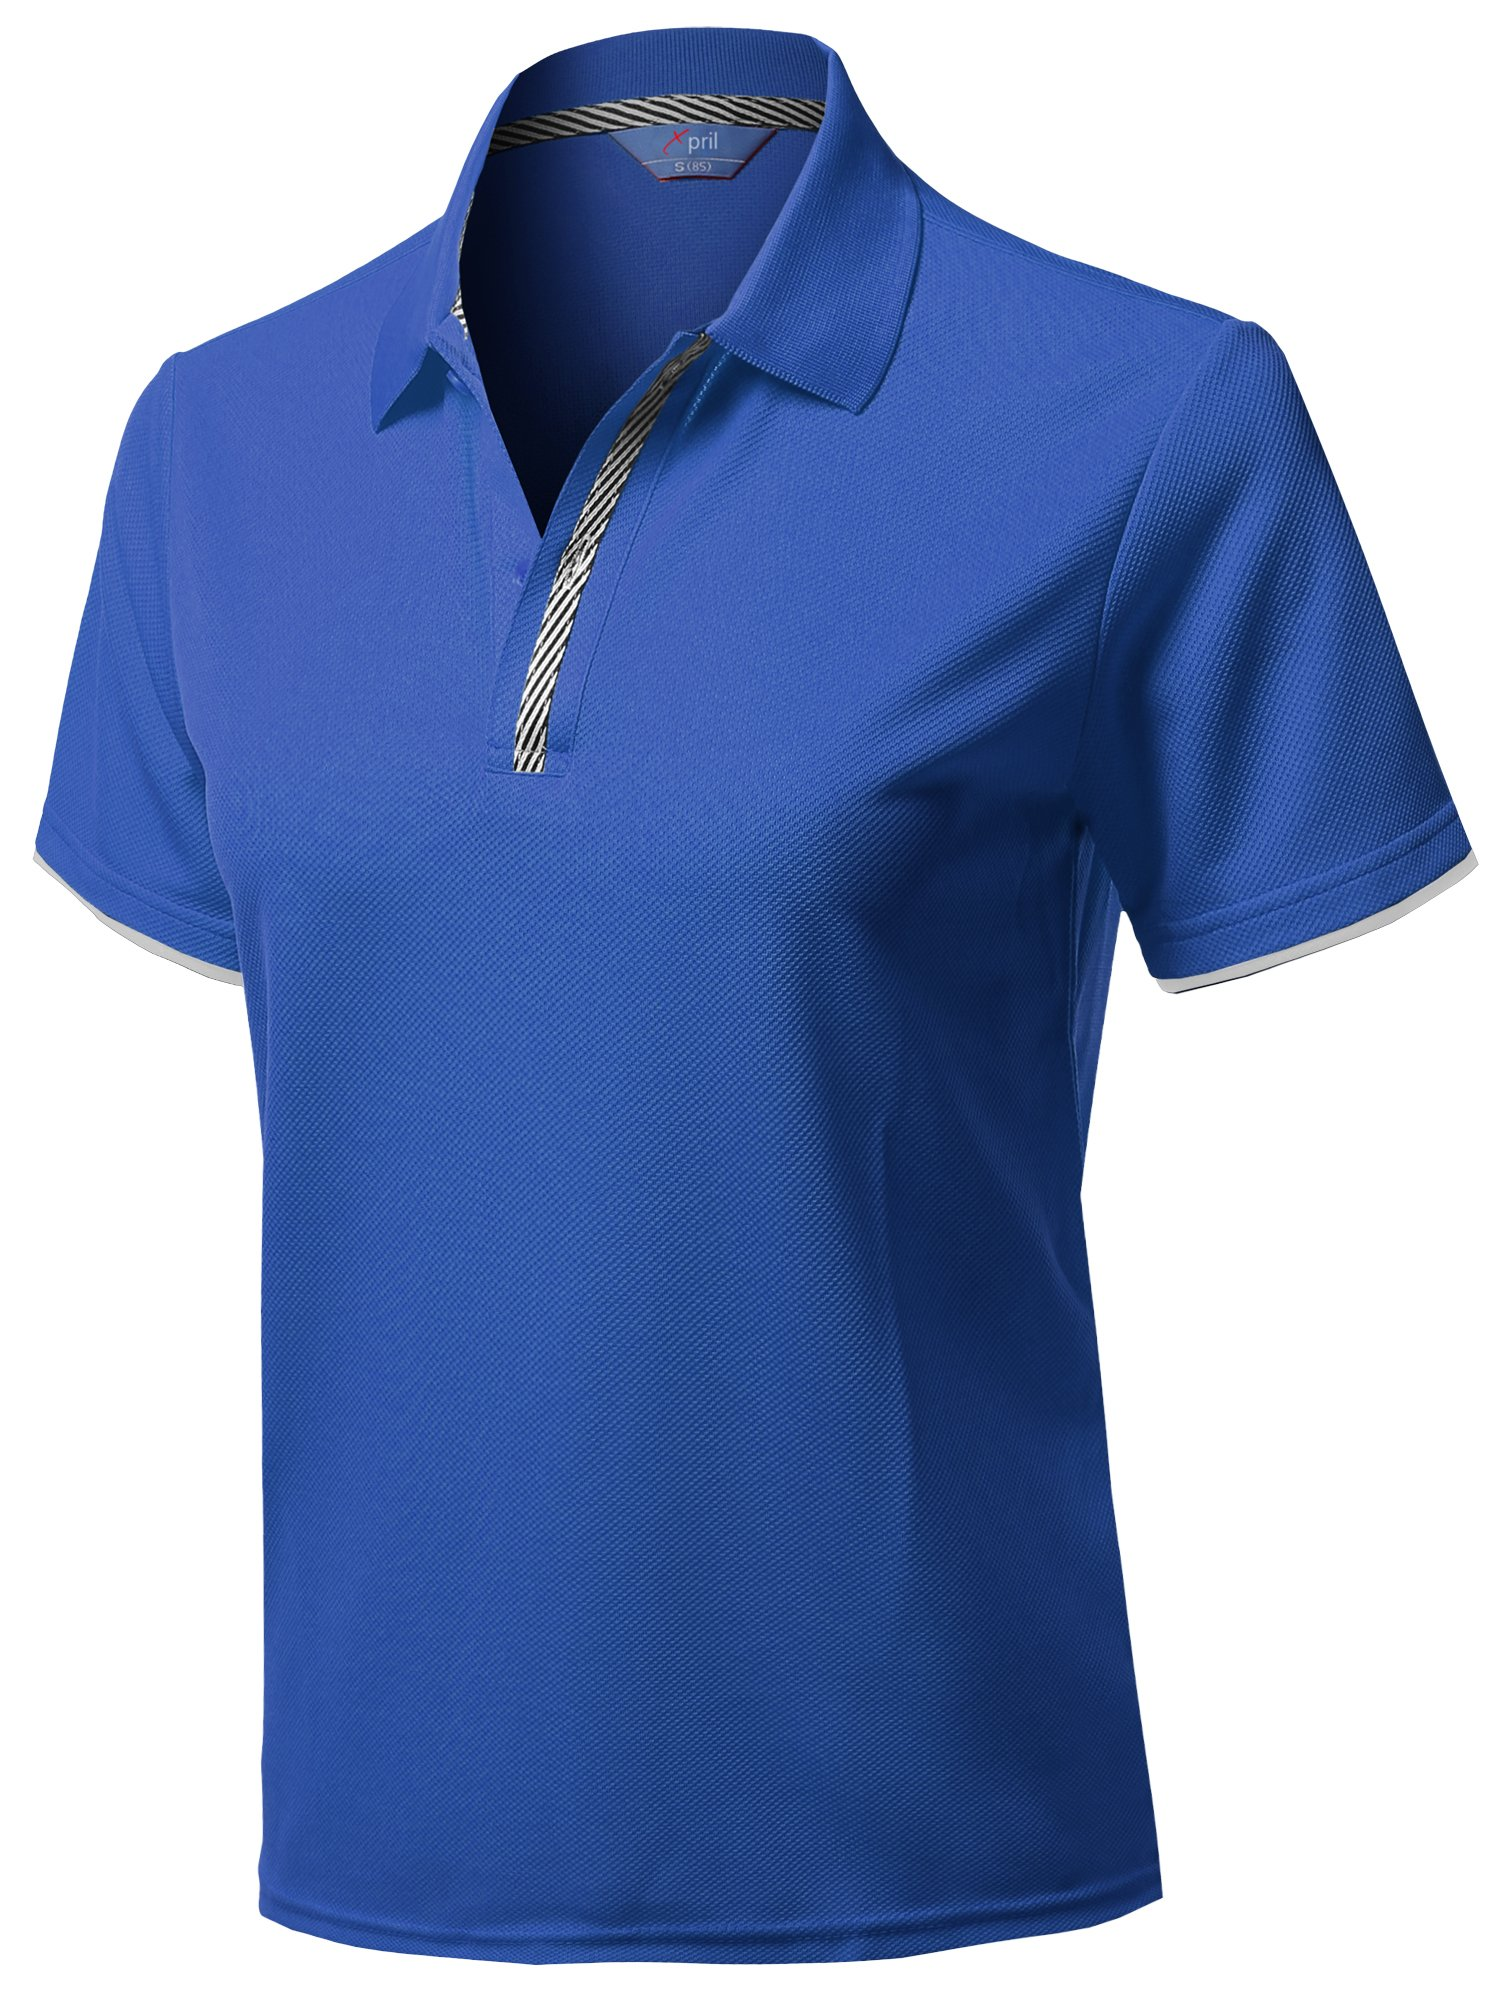 Xpril Solid Cool Dri-Fit Double Layered Short Sleeves Polo Blue Size M